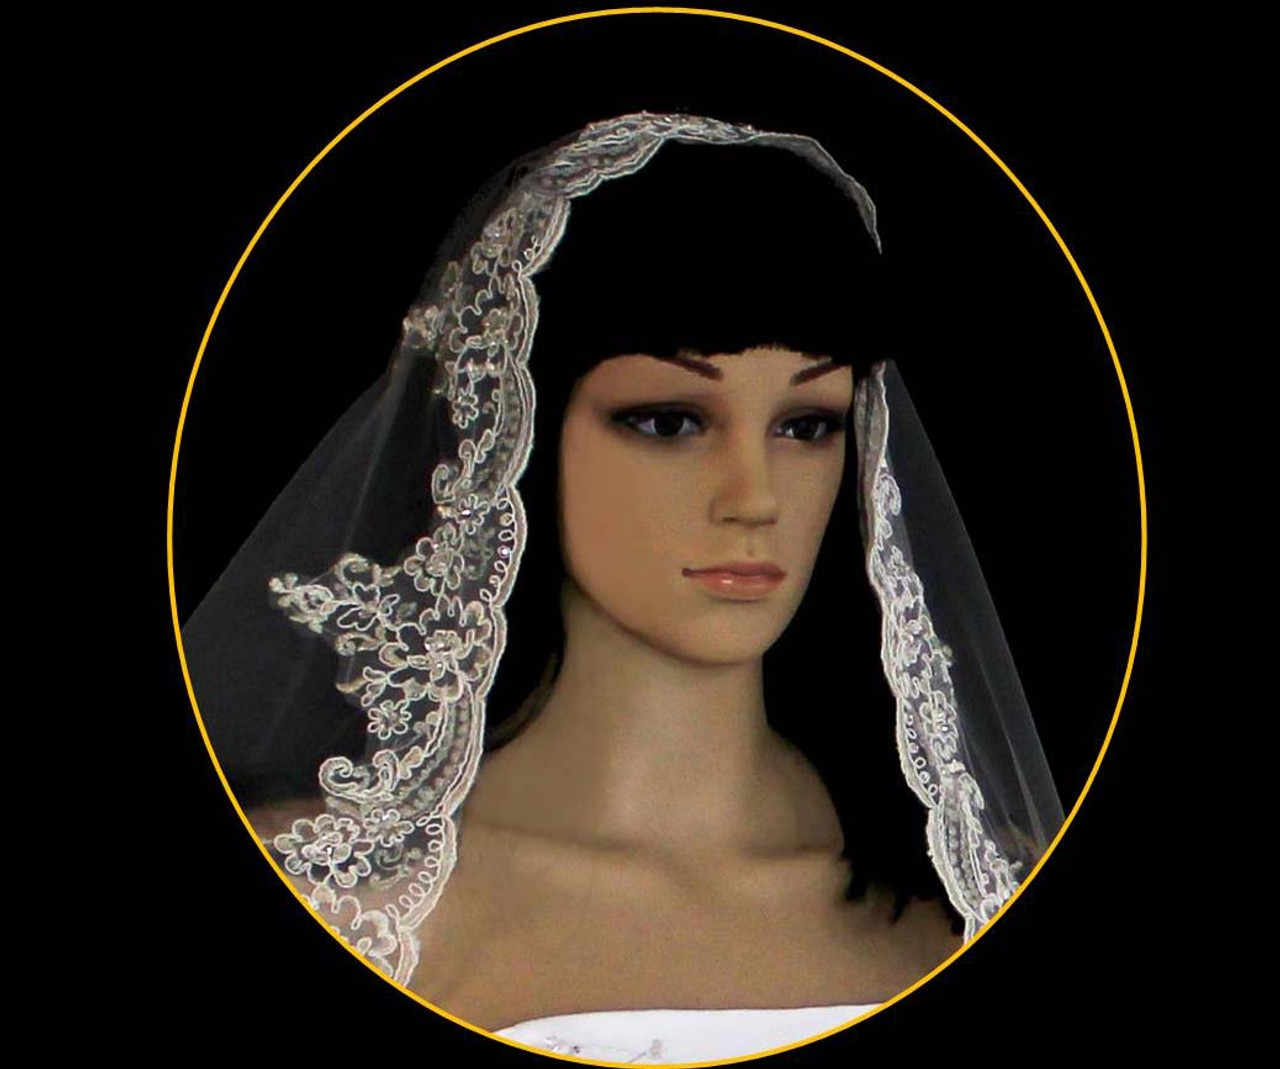 Noelle & Ava Collection - 108 Inches - Romantic Silver Thread Alencon Lace Veil Accented With Rhinestones, Bugle Beads. Seeds And Sequins – Mantilla Full Circle